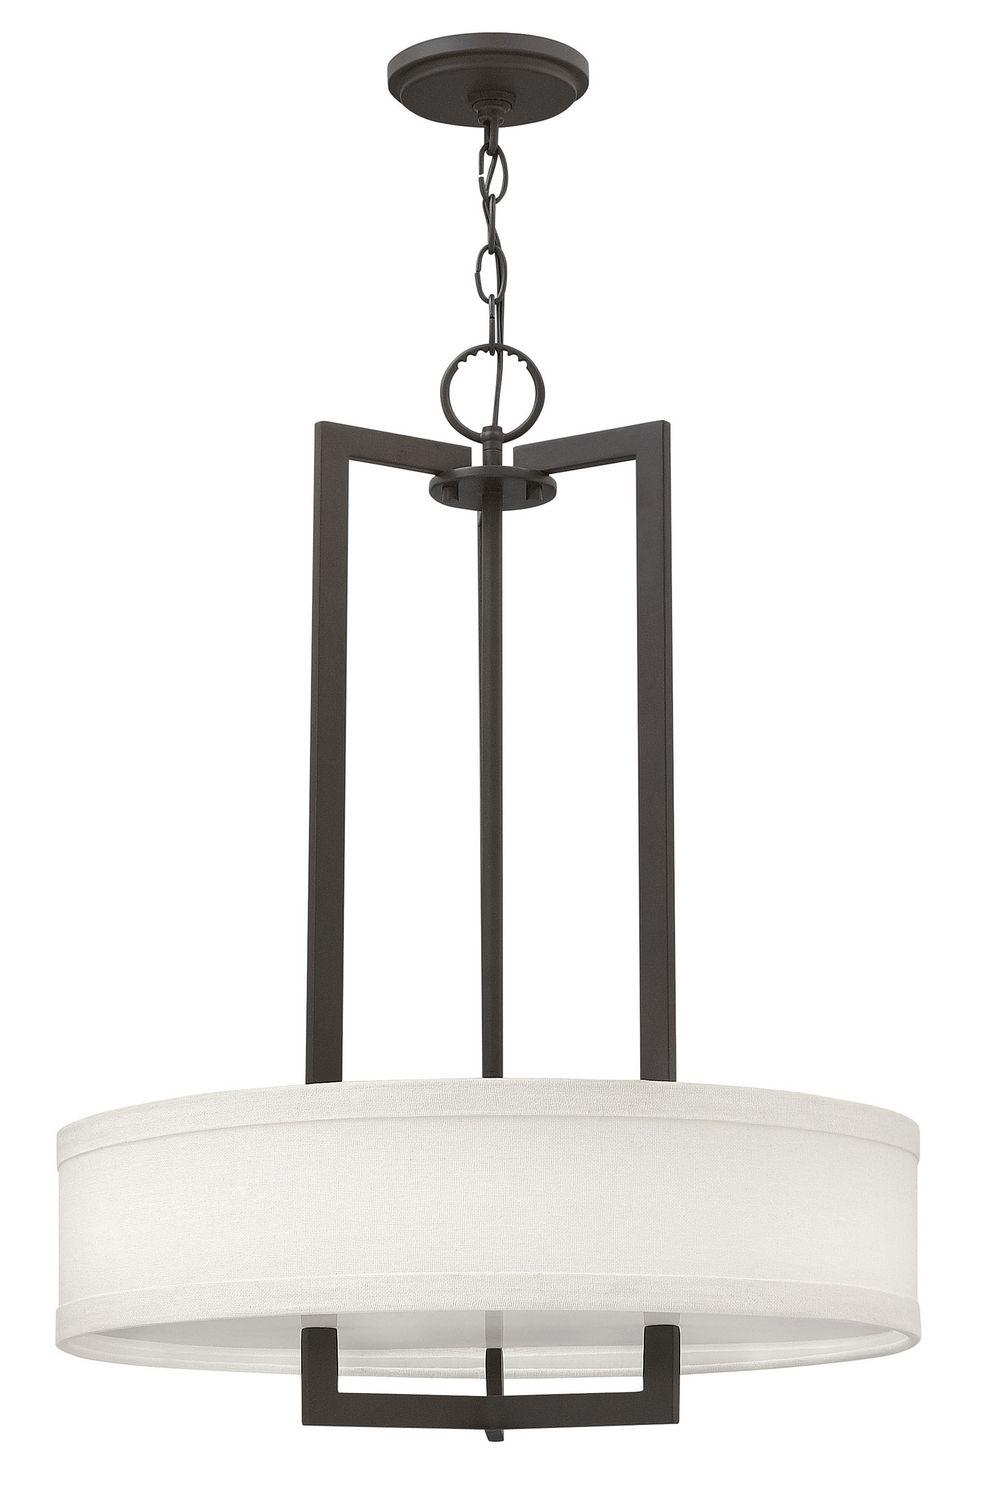 Contemporary Craftsman Chandelier In Brushed Bronze Finish With Off White Linen Shade From The Hampton Collection By Hinkley Lighting